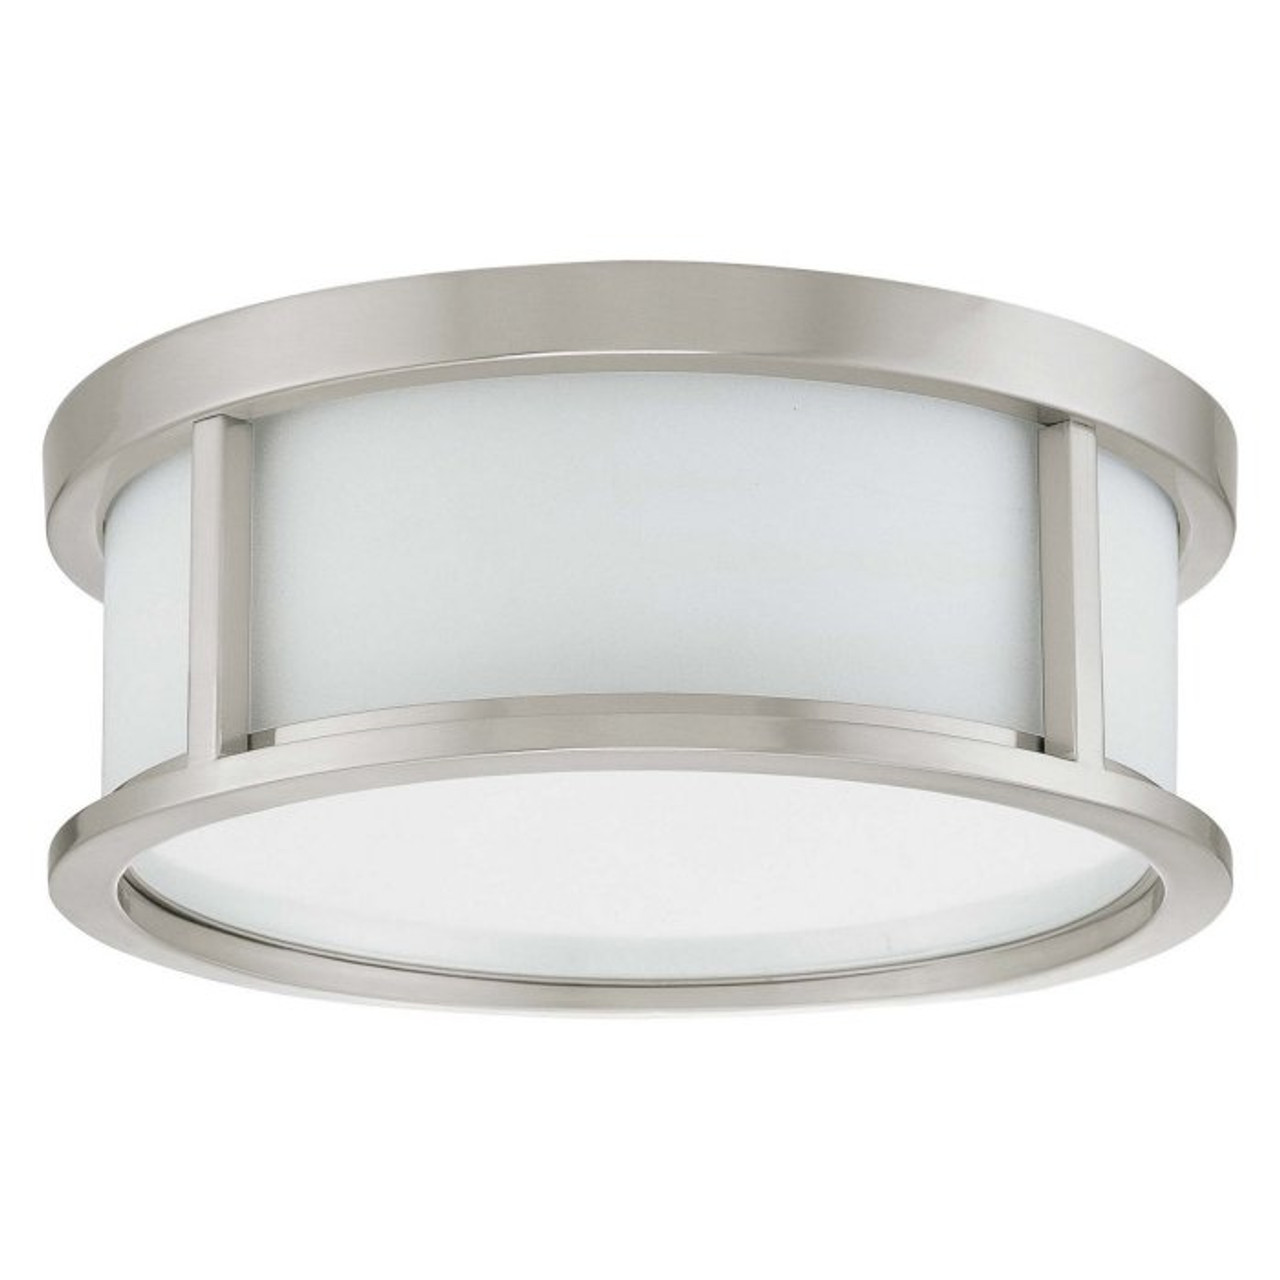 """Nuvo Odeon 13"""", Brushed Nickel with Satin White Glass, 2 Light, Ceiling Mount Flush Dome with Satin White Glass, 120V, 2@60W (60-2859)"""